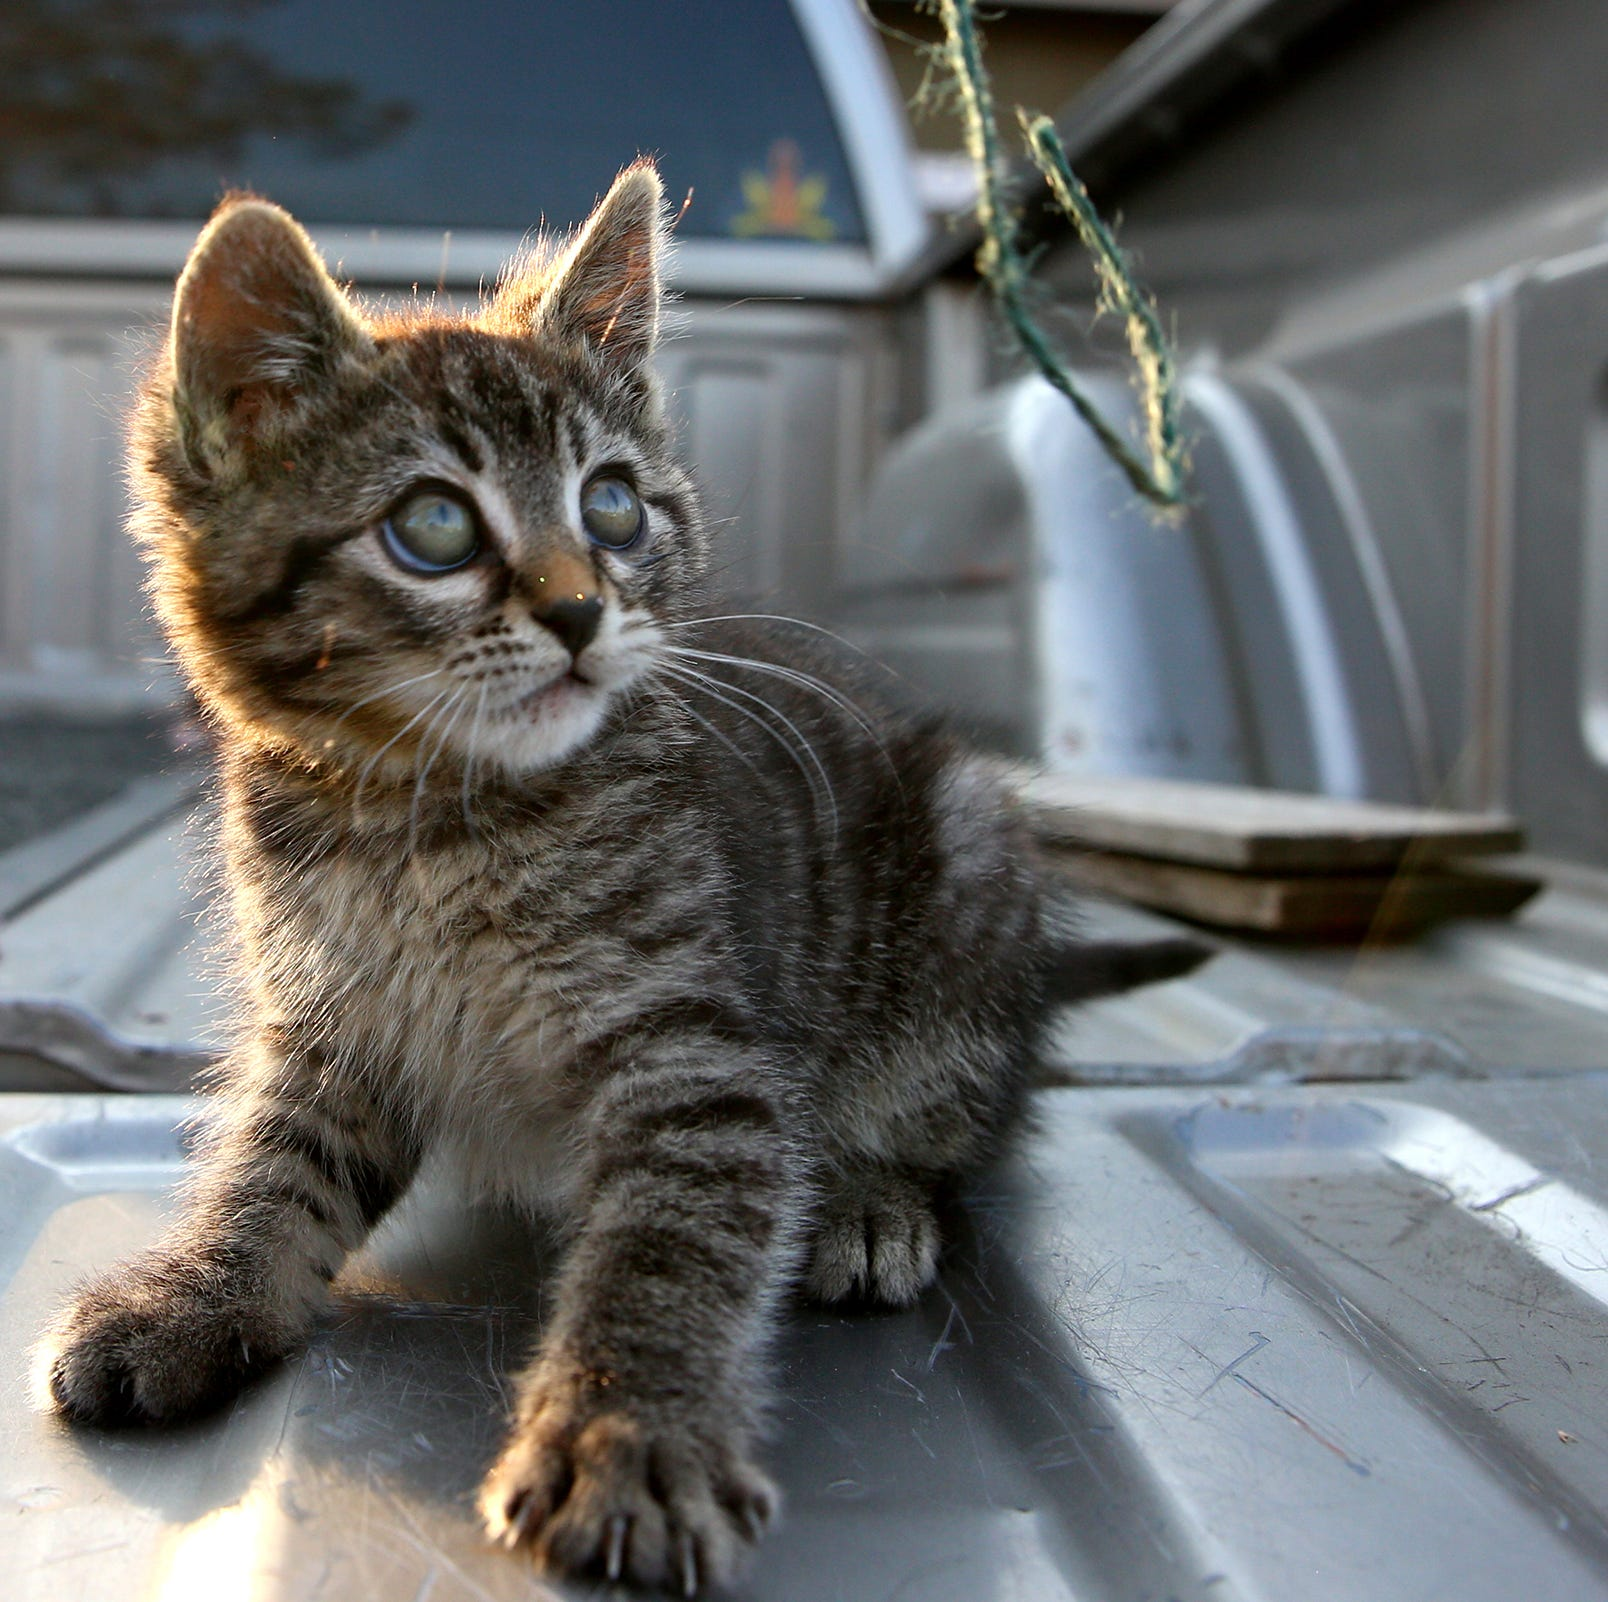 Sticky the kitten plays with a string on Monday, Oct. 22 in Silverton. She was found glued to the side of the road.